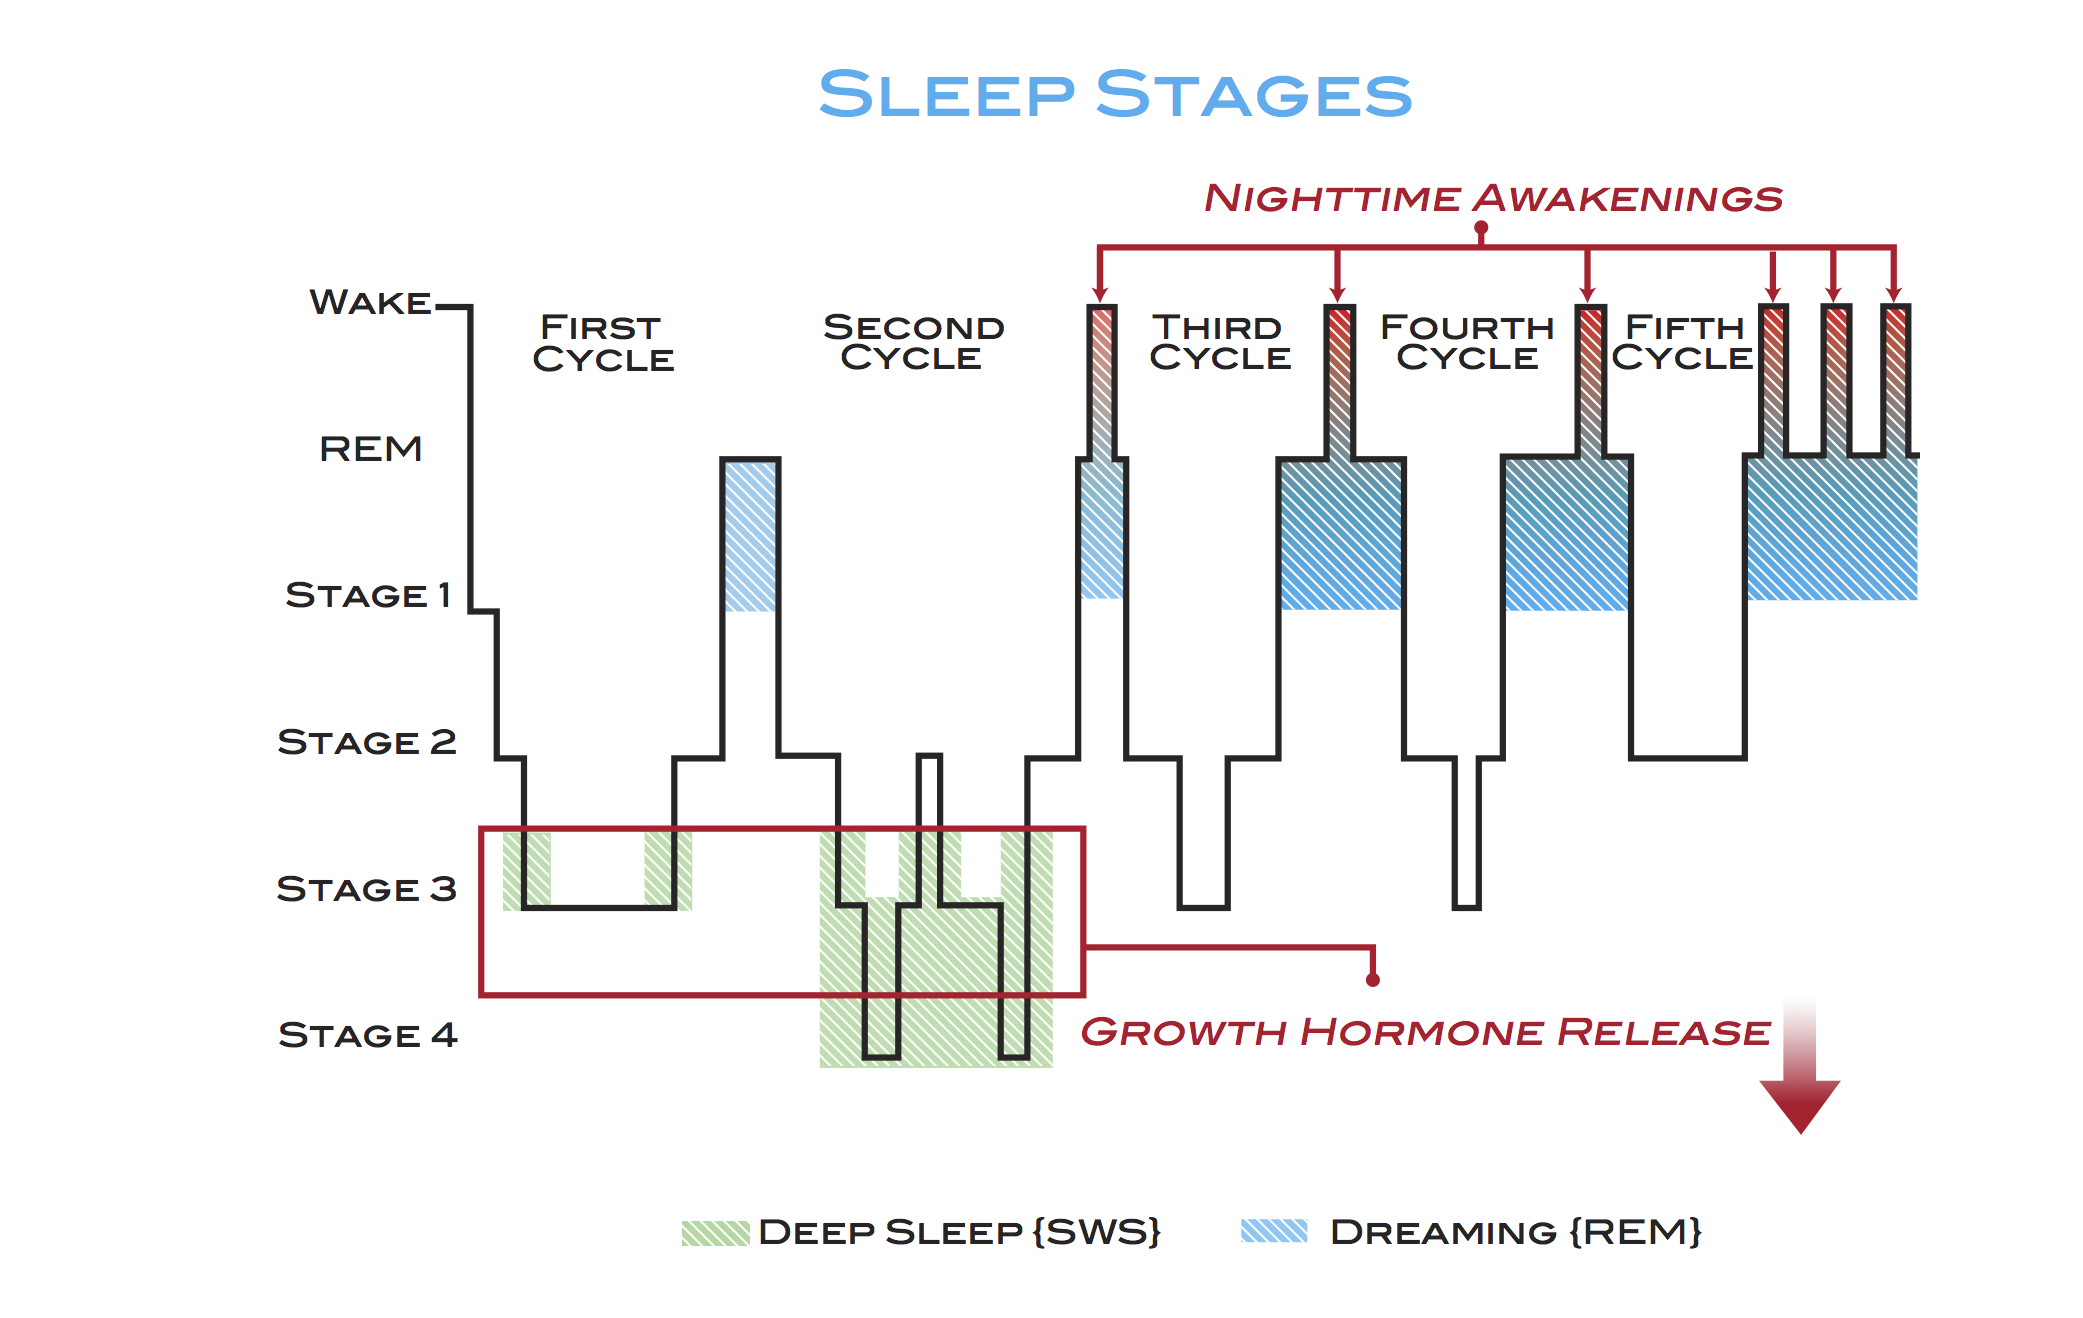 Sensational Stages Of Sleep What To Know About Non Rem And Rem Sleep Cycles Letkol Mohammedshrine Wiring Cloud Letkolmohammedshrineorg